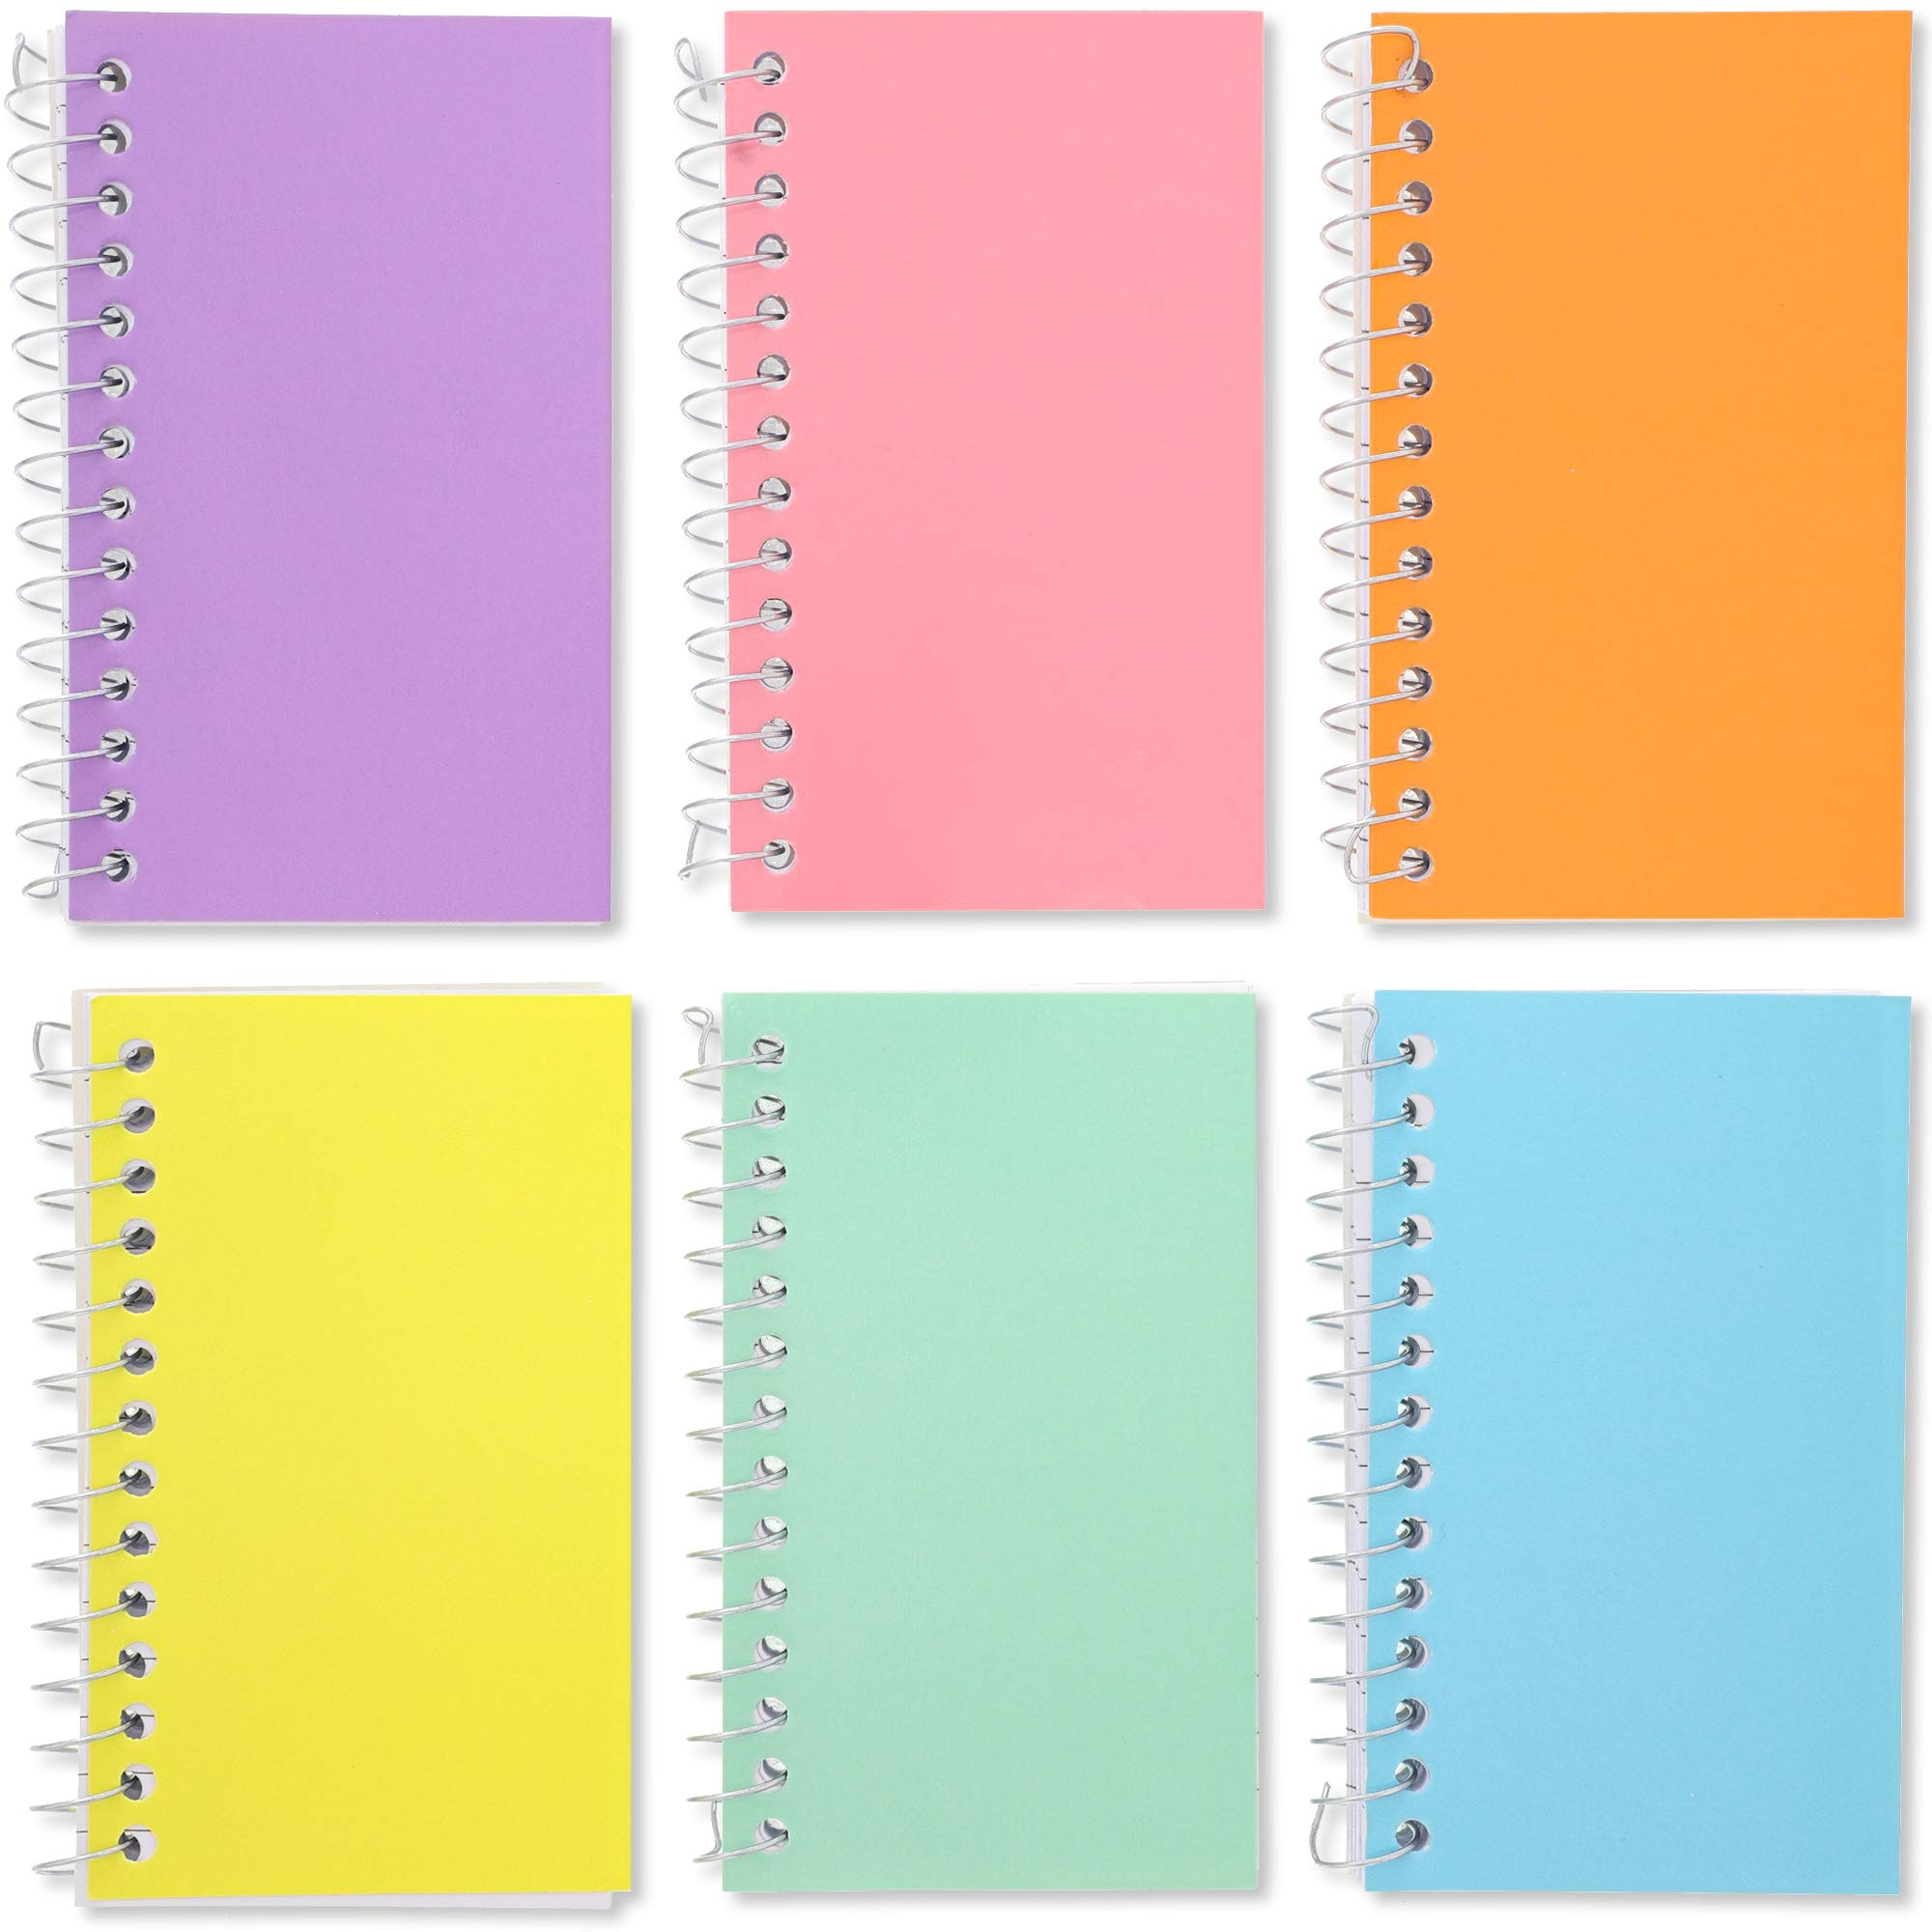 Paper Junkie 12-Pack Mini Spiral Notebooks, College Ruled Wirebound Notepads, Pastel Colors, 3 x 5 Inches